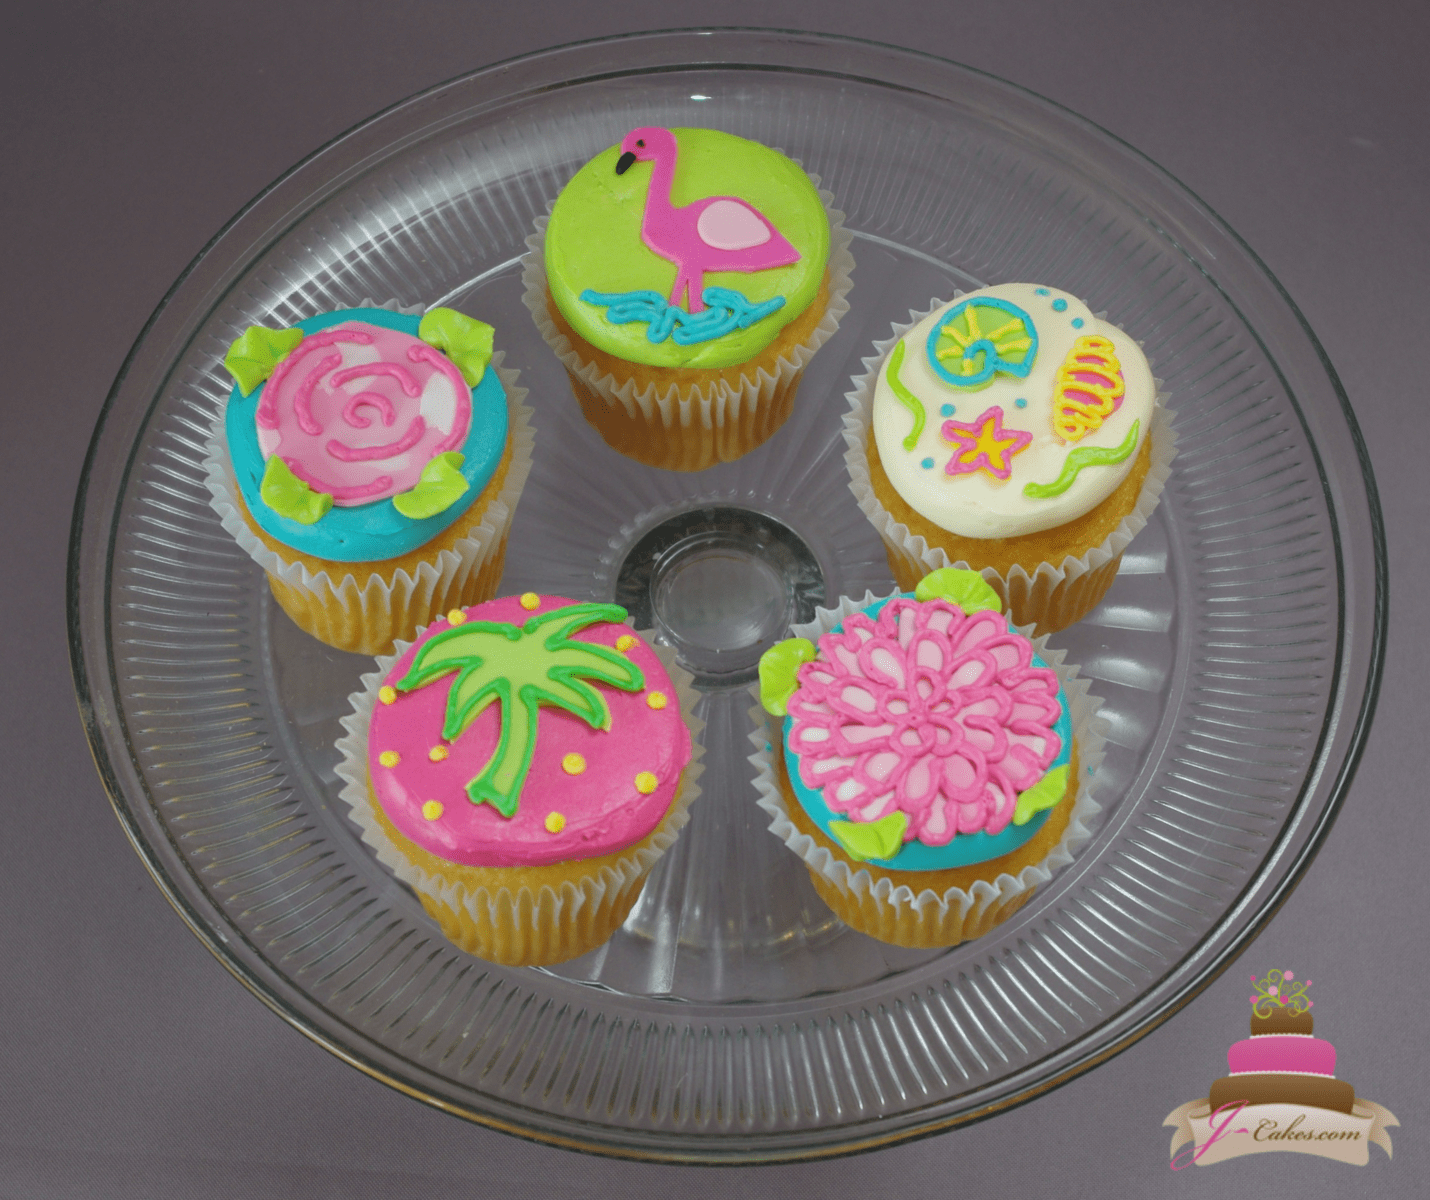 (655) Lily Pulitzer Cupcakes